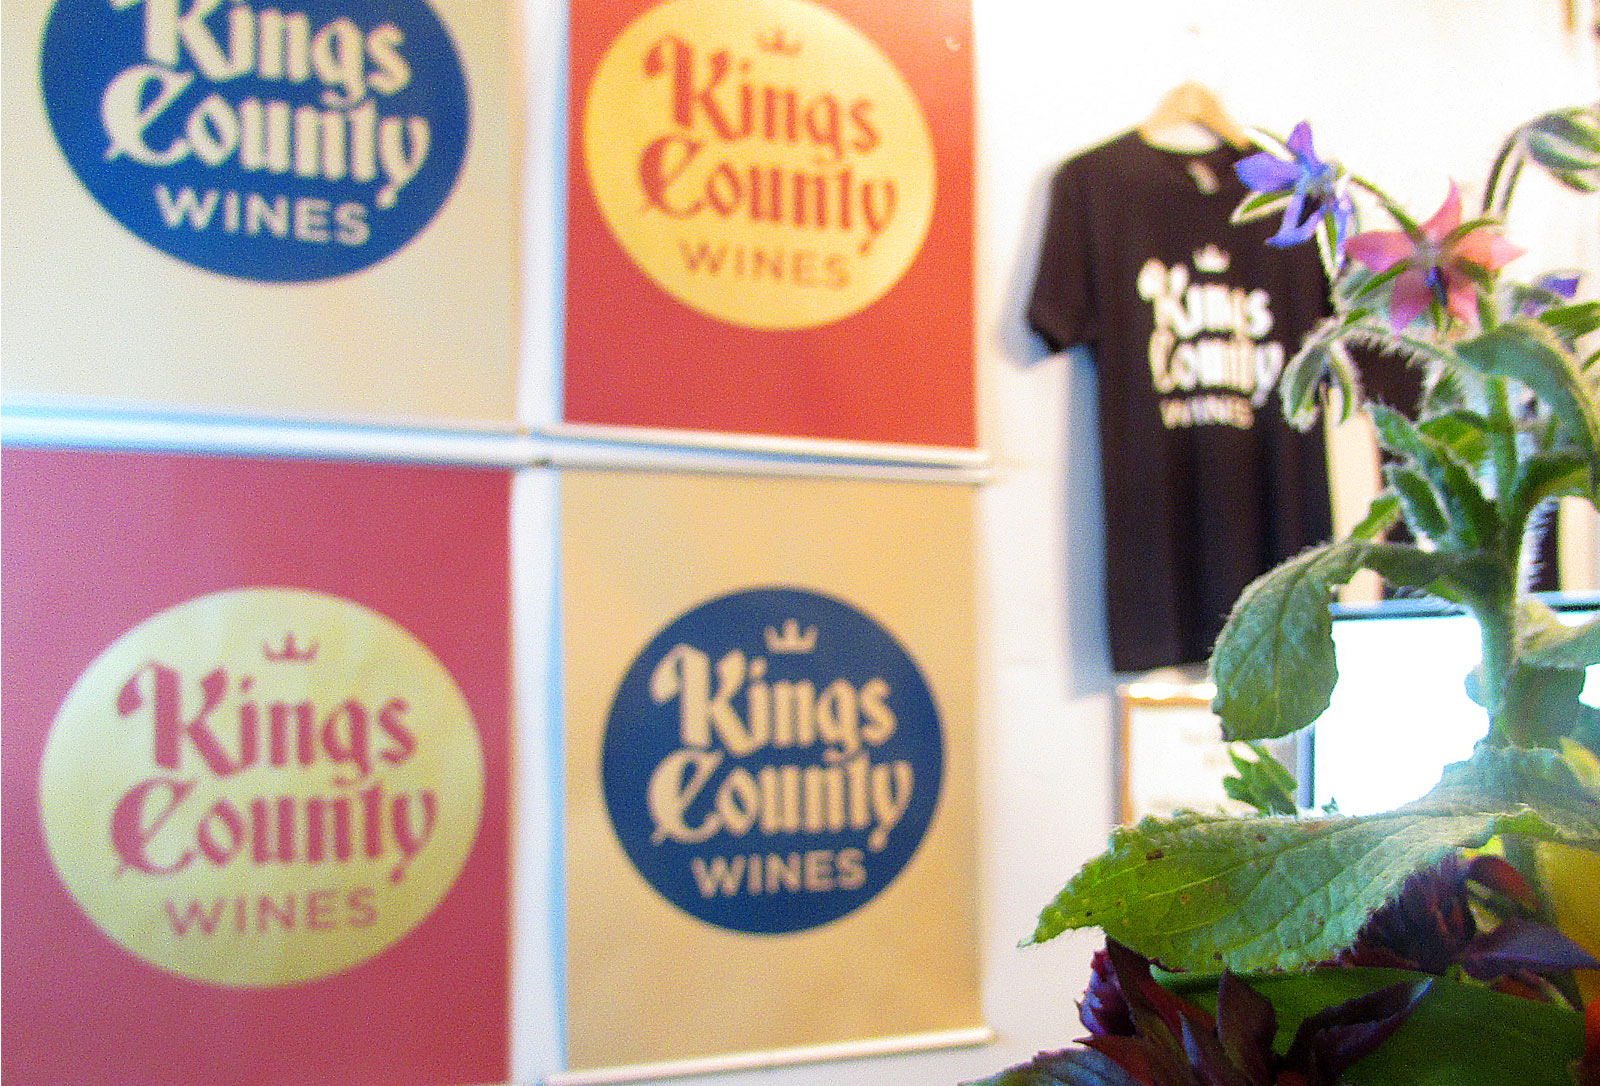 Kings County Wines interior signage